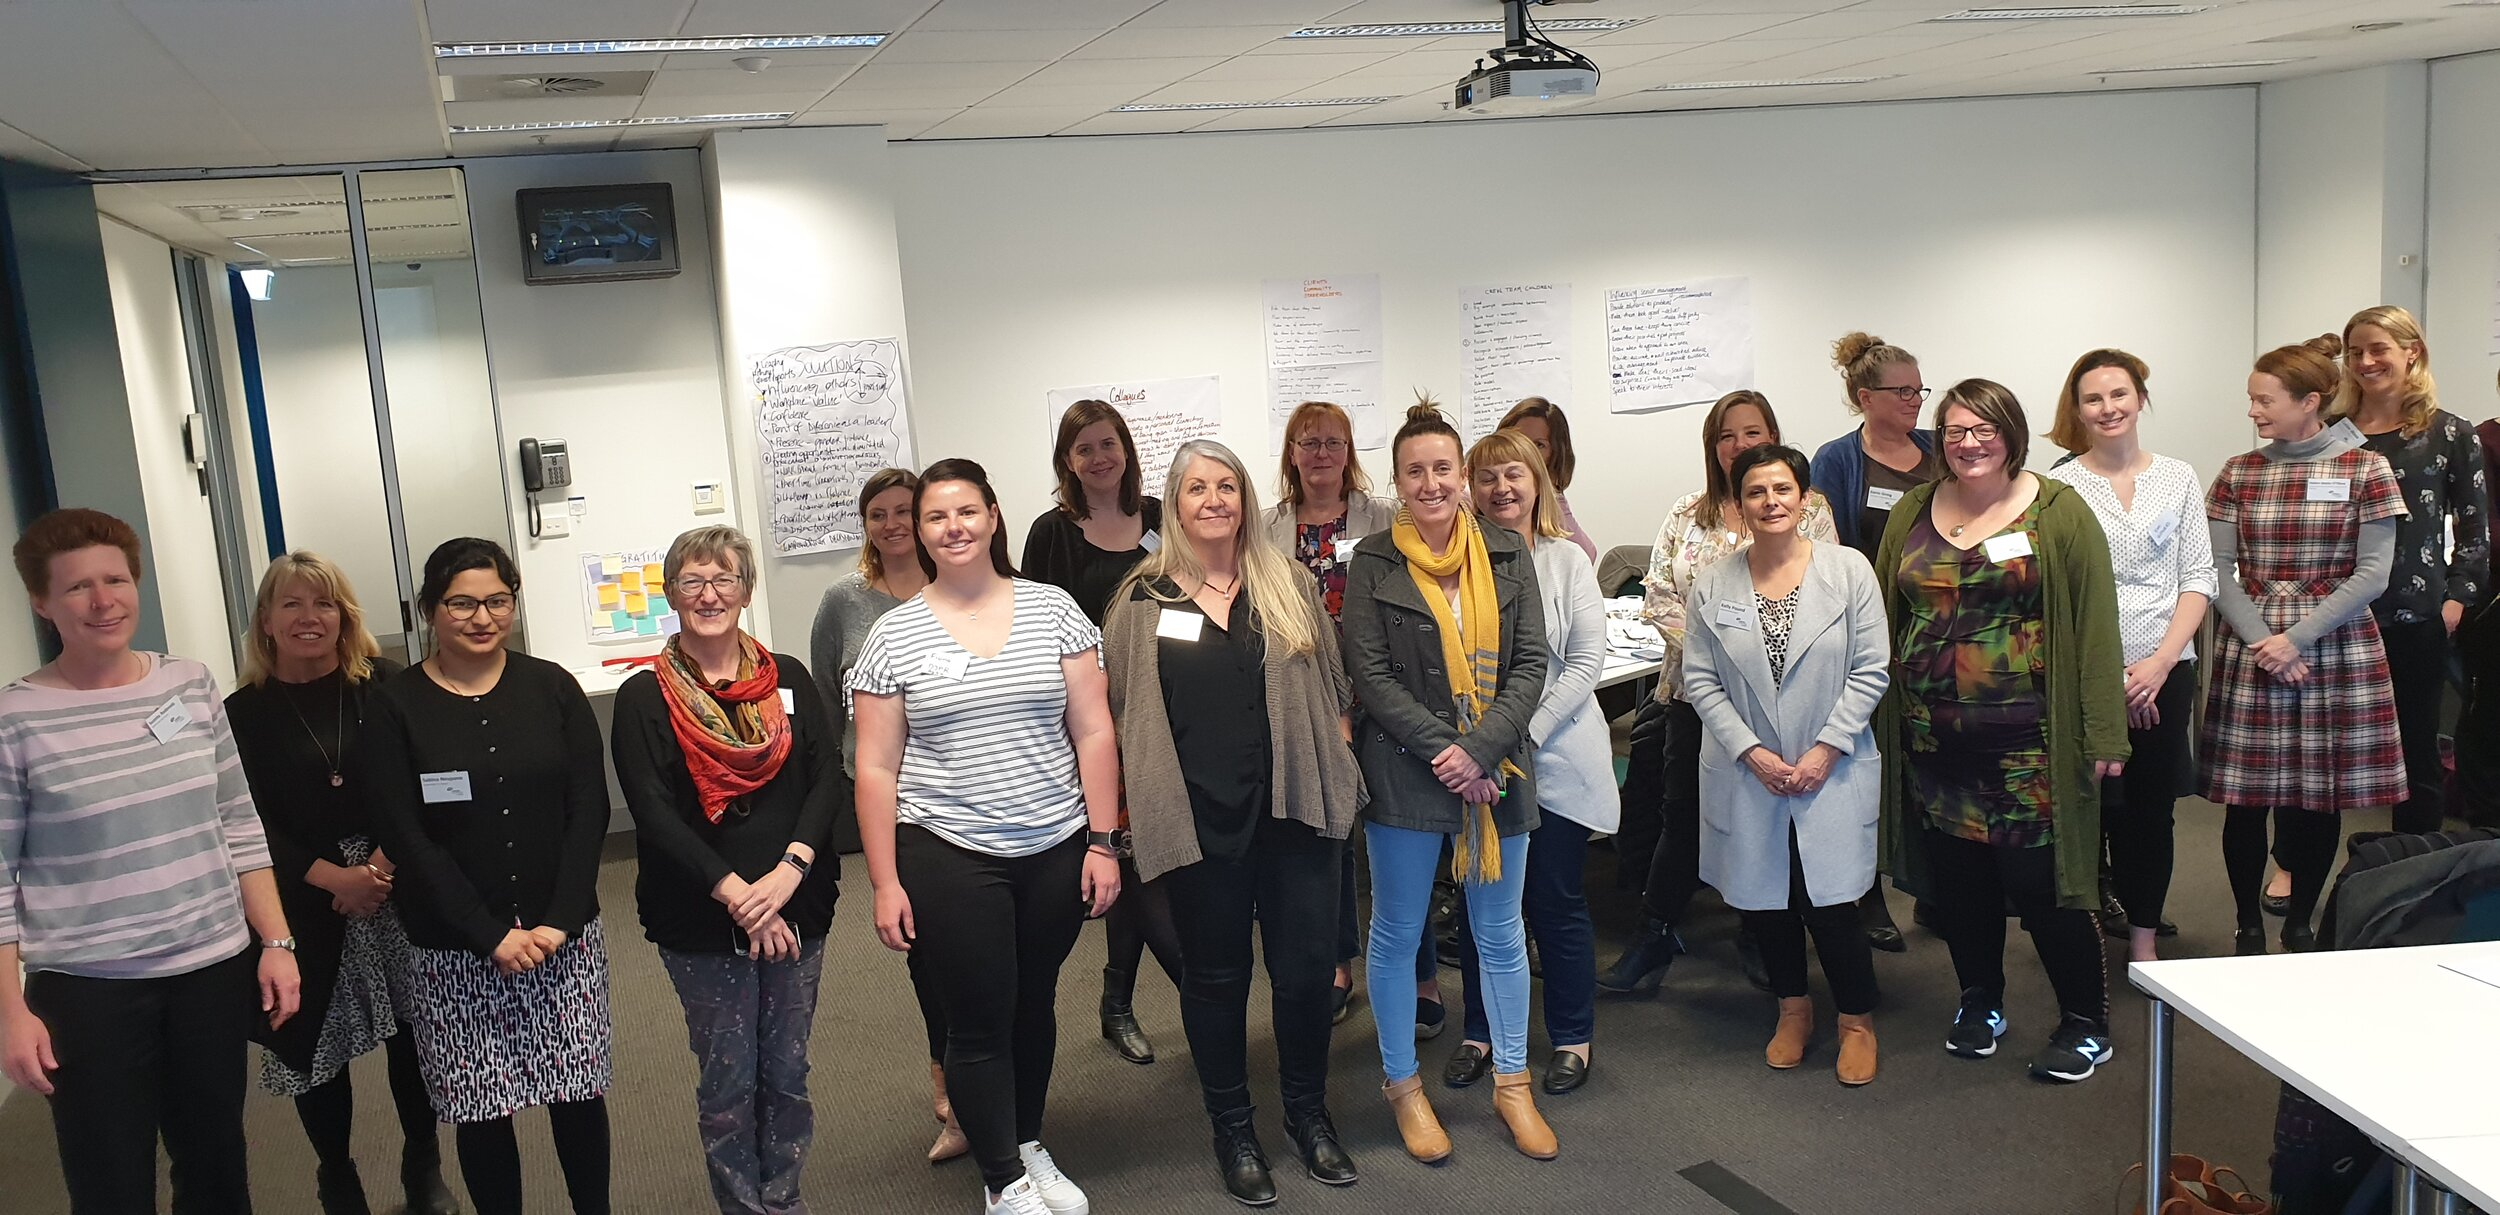 My most recent group of awesome women from the Victorian Public Sector who participated on The Female Factor.